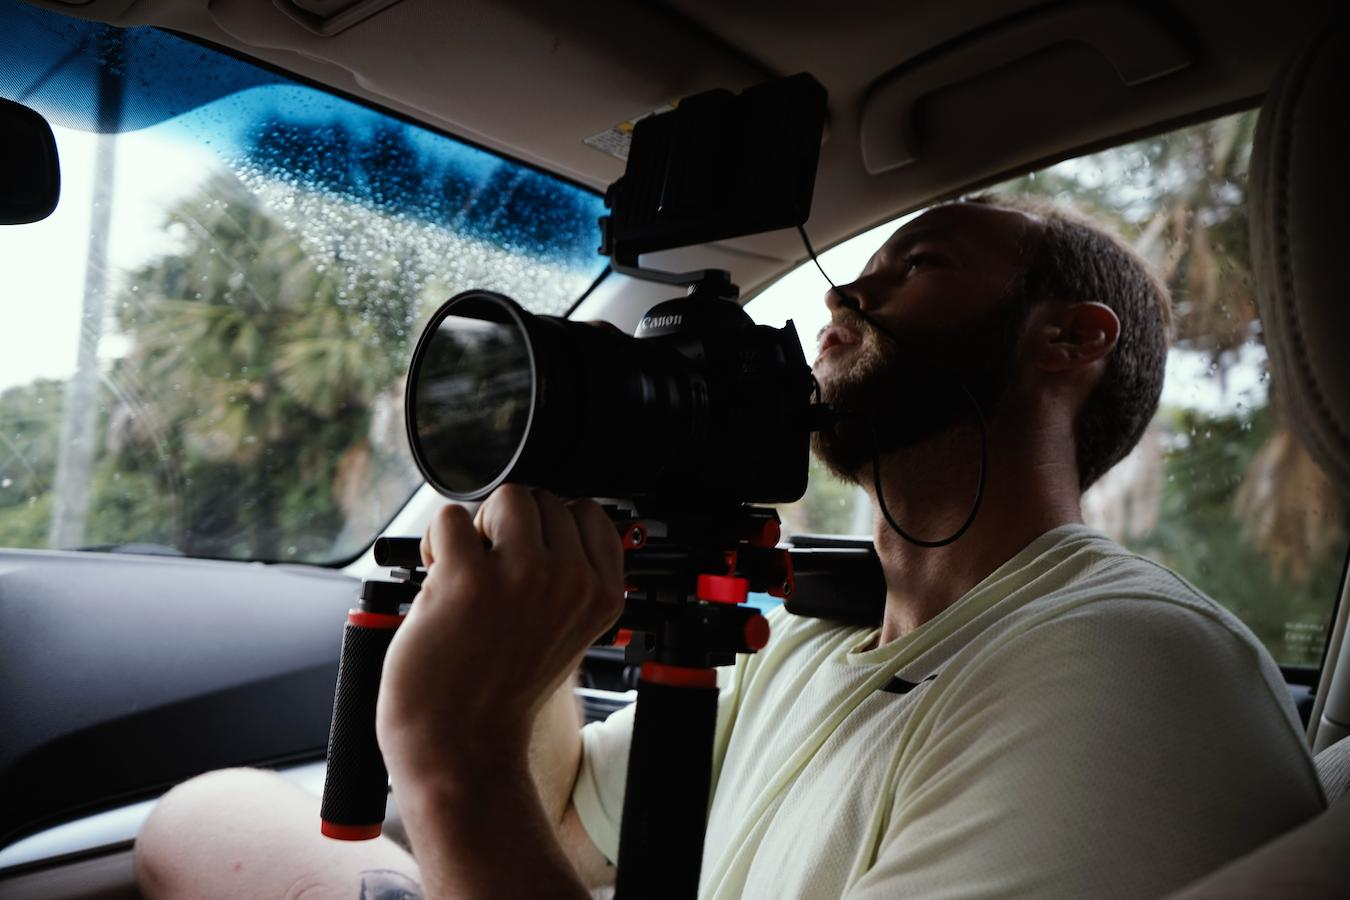 How to get into documentary filmmaking